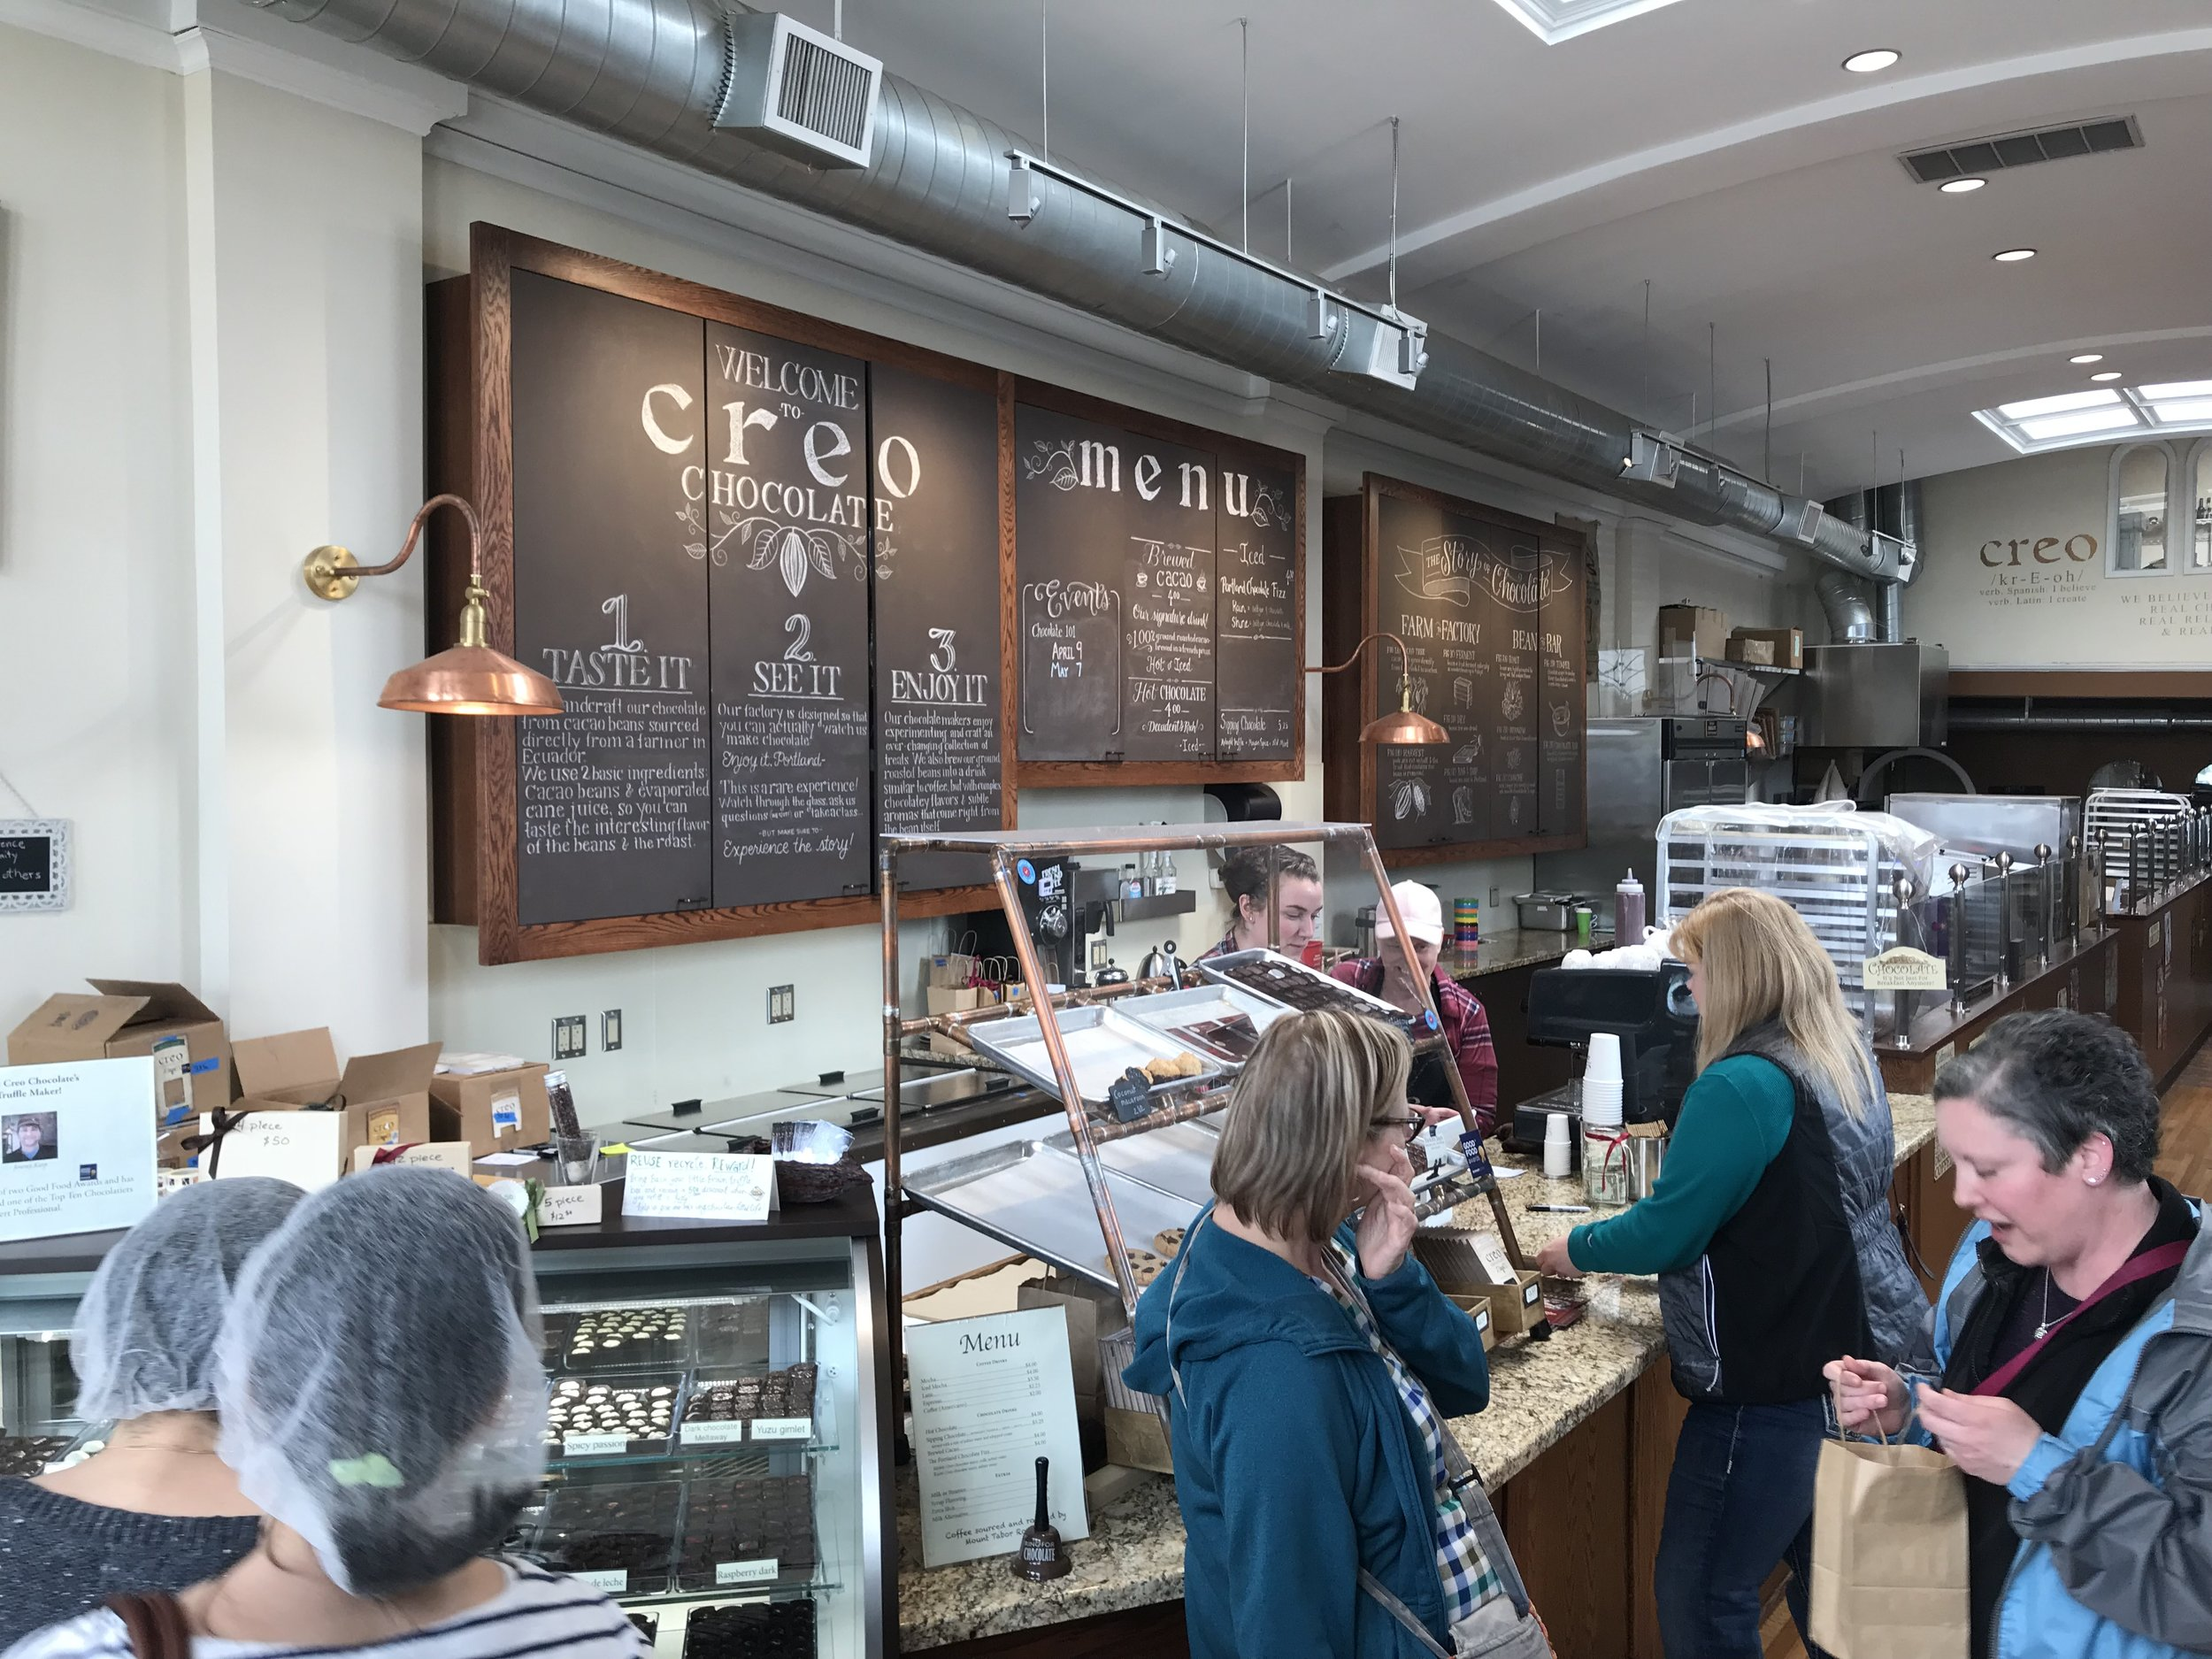 A view inside Creo Chocolate Factory. If you enjoy chocolate, this place is your jam. Image Courtesy: Dan Meyers